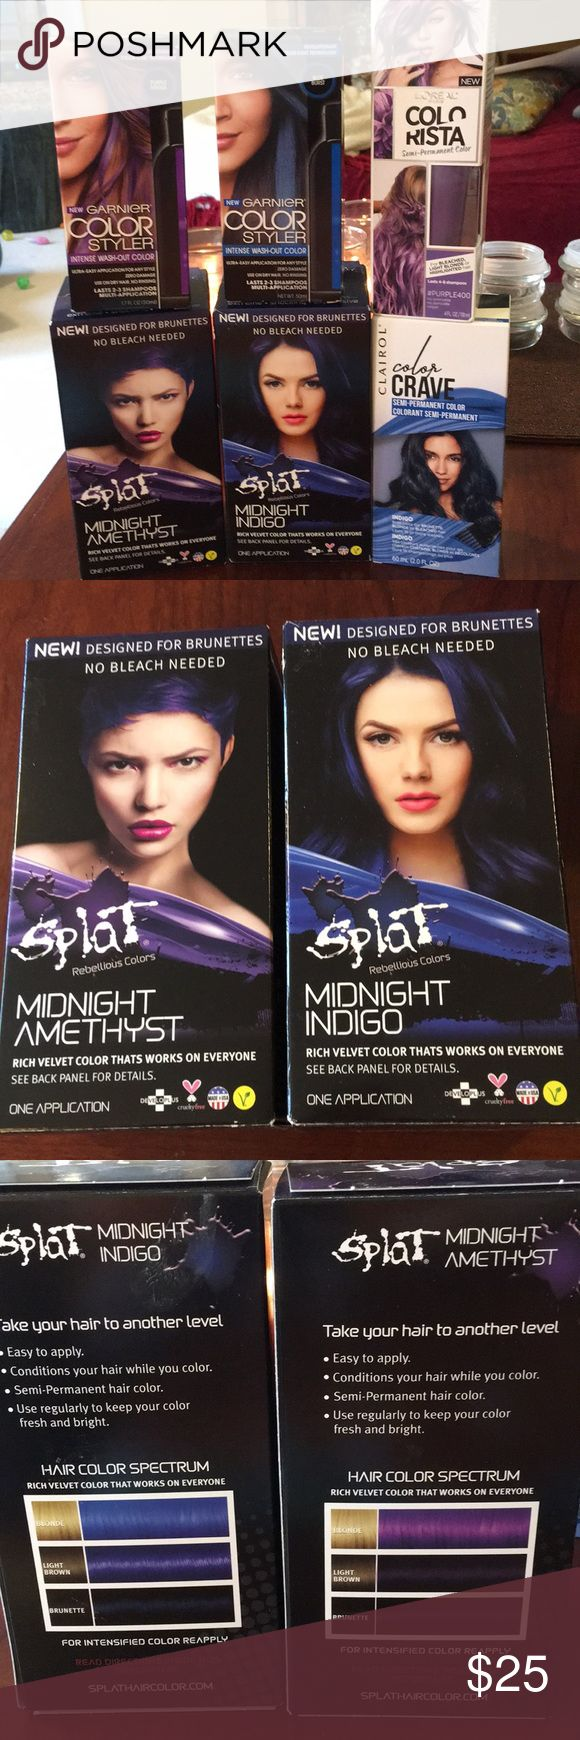 NEW 6 Boxes of Blue & Purple HAIR COLOR You will receive 2 boxes of SPLAT - one Midnight Amethyst and one Midnight Indigo.  They're Semi-Permanent but it doesn't say on the box how long the color lasts. These two boxes are designed for brunettes. You will also receive two boxes of Garnier Color Styer in Purple Mania and Blue Burst. They last 2-3 shampoos.  You will also receive 1 box of Clairol Color Crave in Indigo (semi-permanent) and 1 box of L'Oréal Colorista in Purple (lasts 4-8…